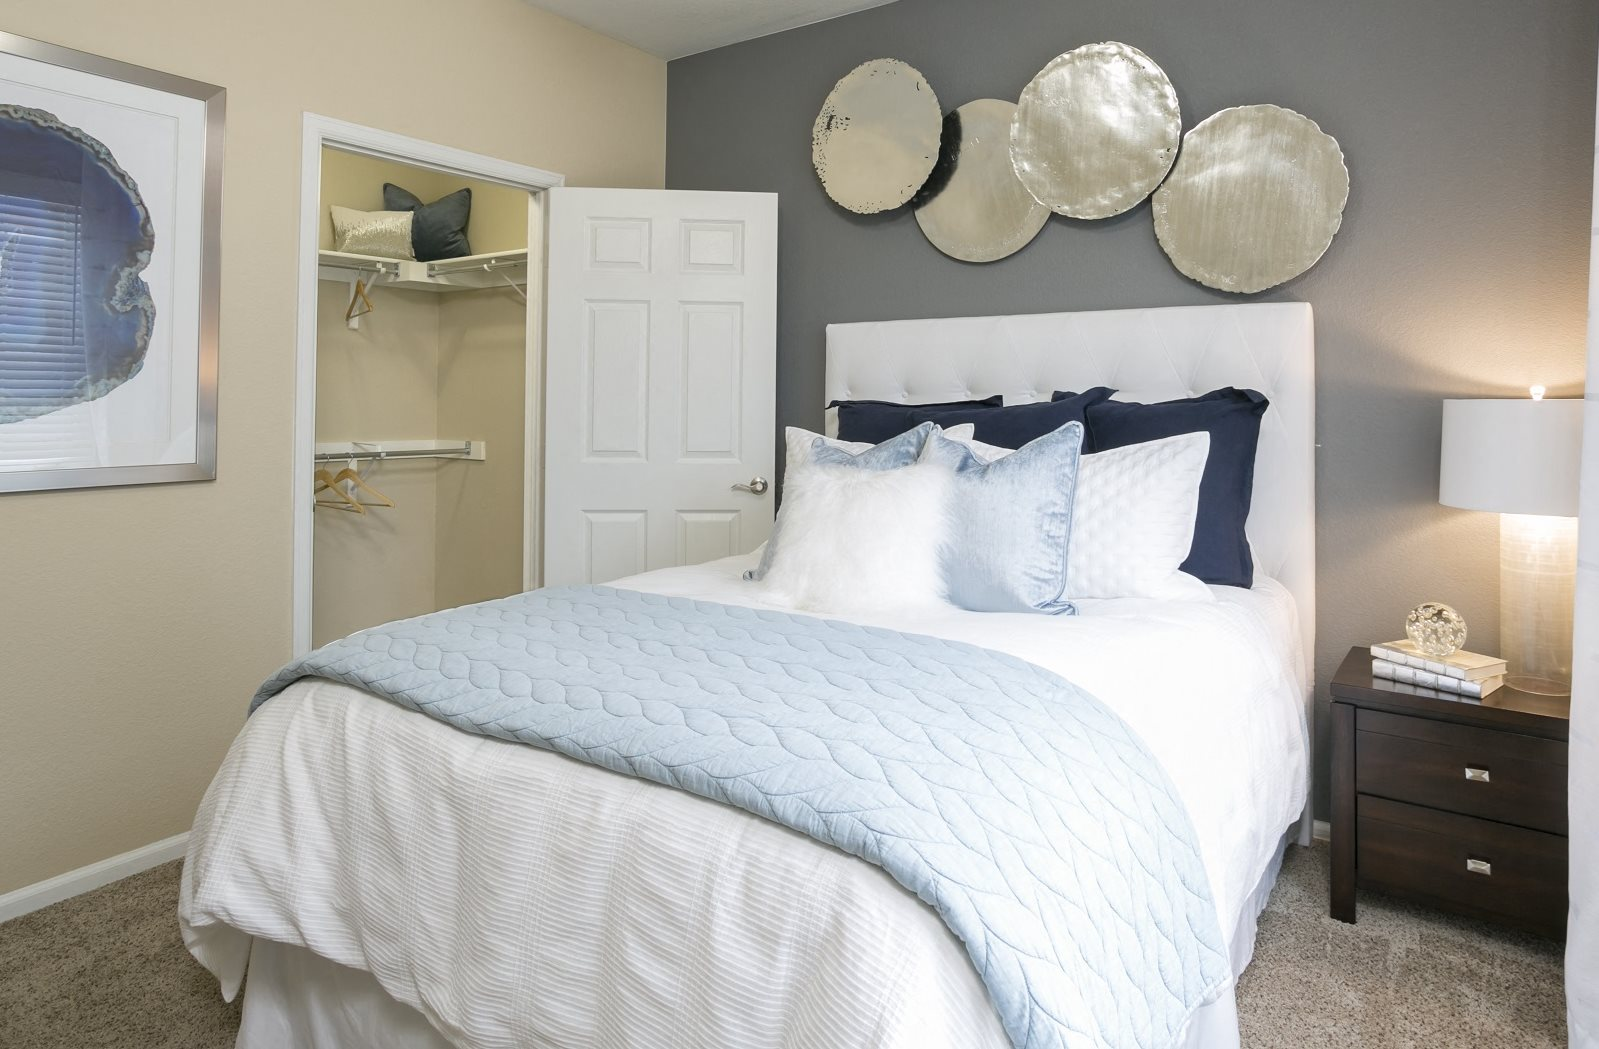 Apartments for rent in aurora co crestone apartments - One bedroom apartments aurora co ...